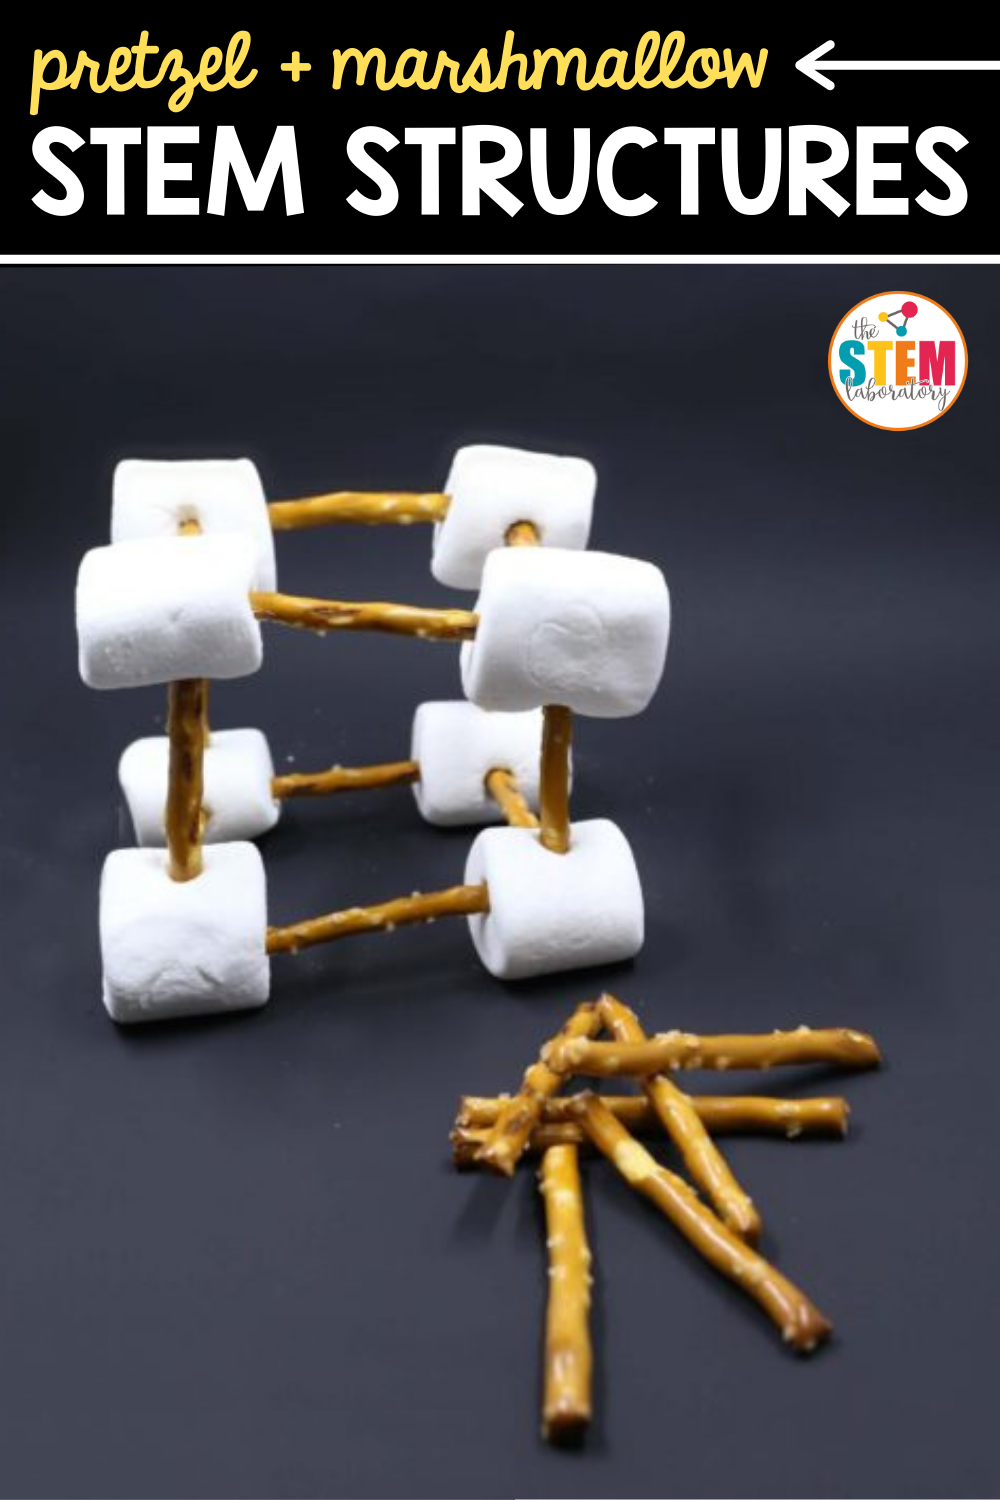 Pretzel and Marshmallow Structures